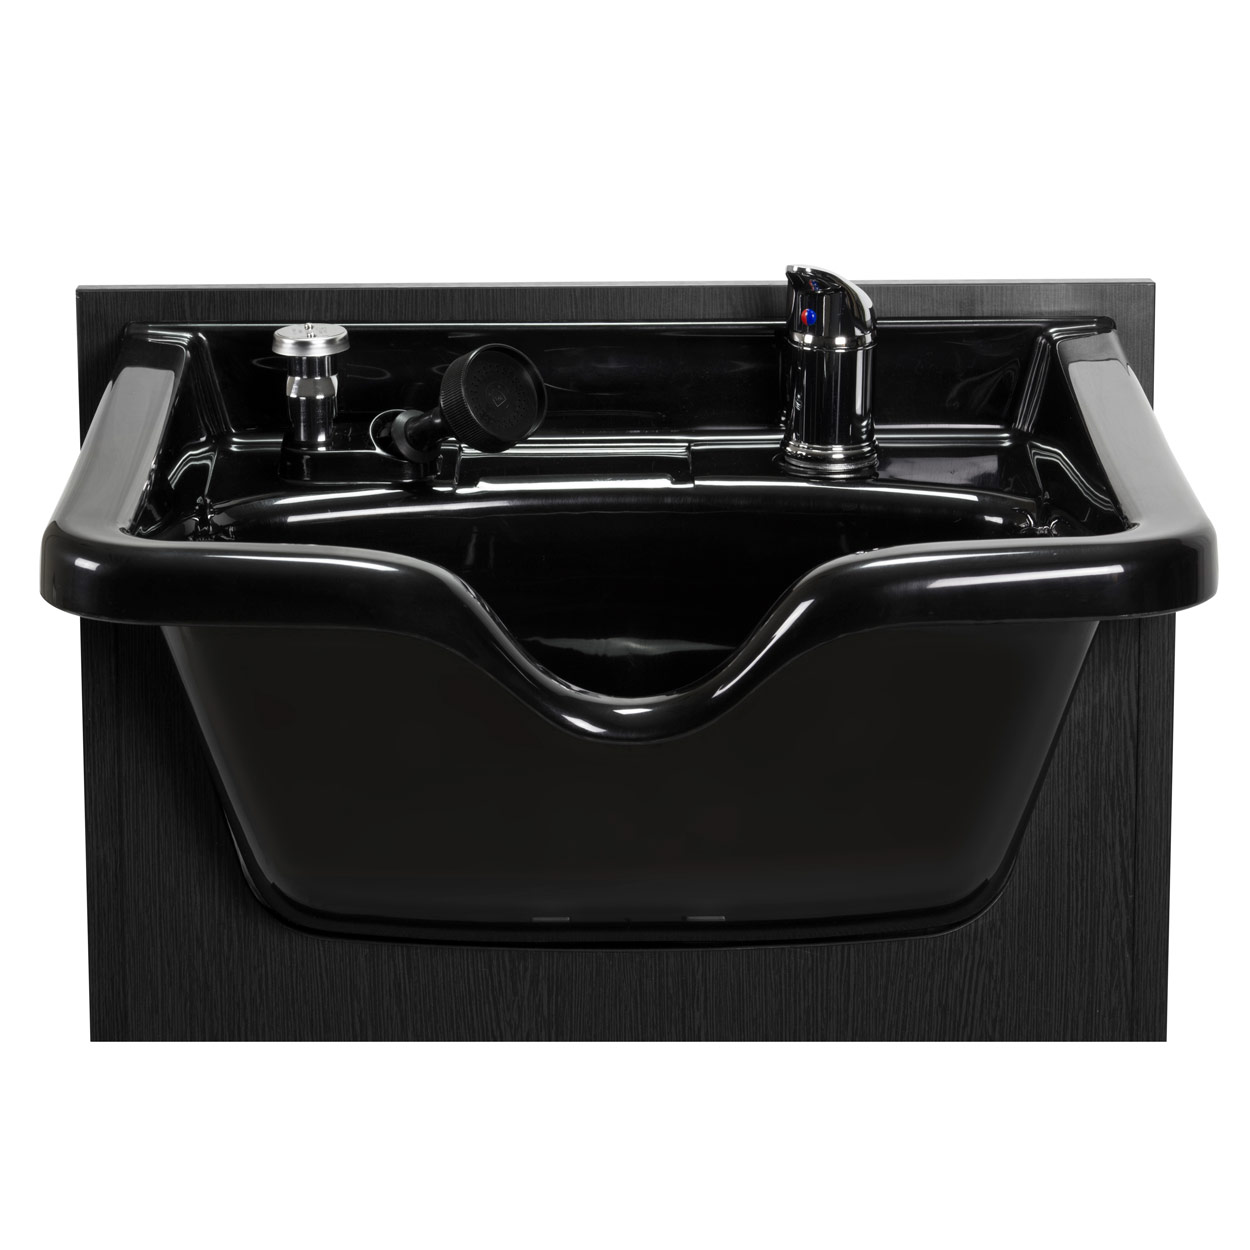 Black Shampoo Bowl With Cabinet Station alternative product image 2